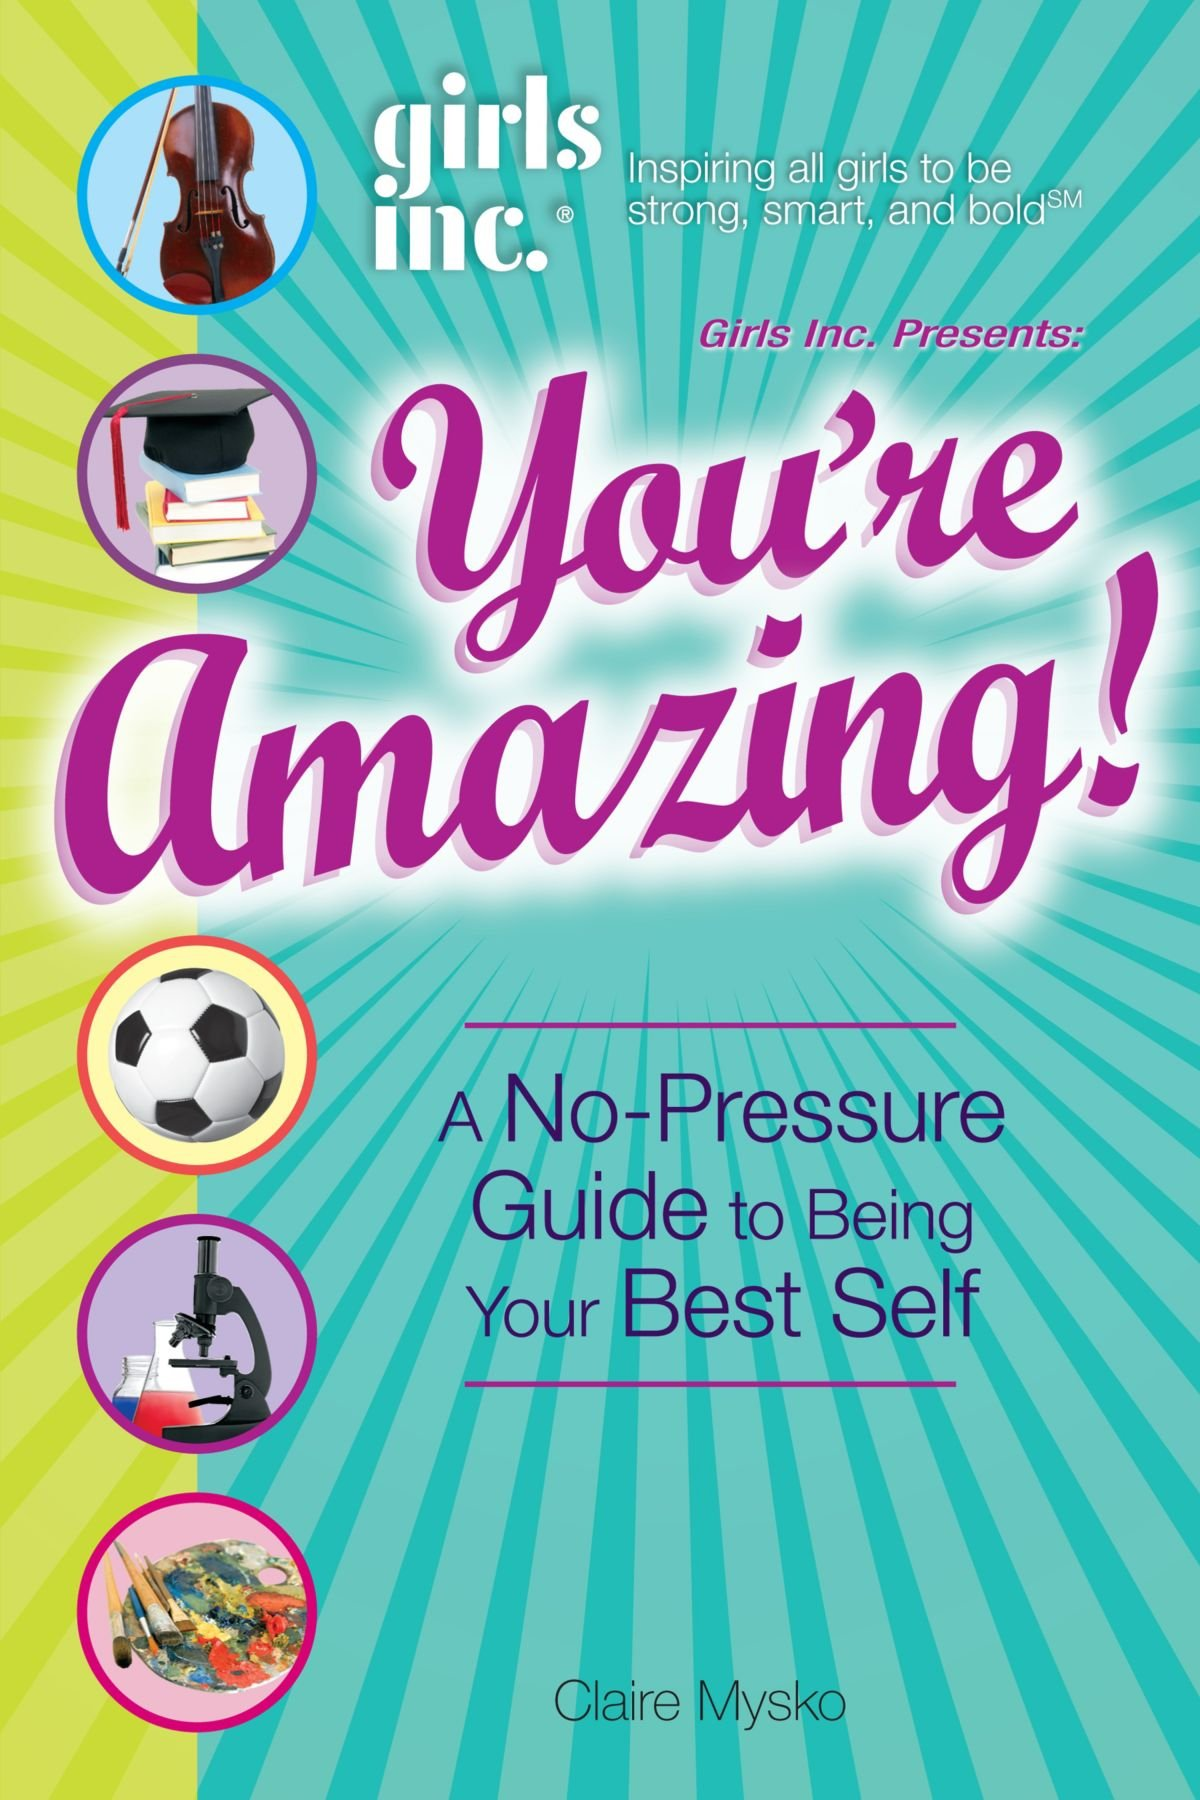 Read Online Girls Inc. Presents: You're Amazing!: A No-Pressure Guide to Being Your Best Self pdf